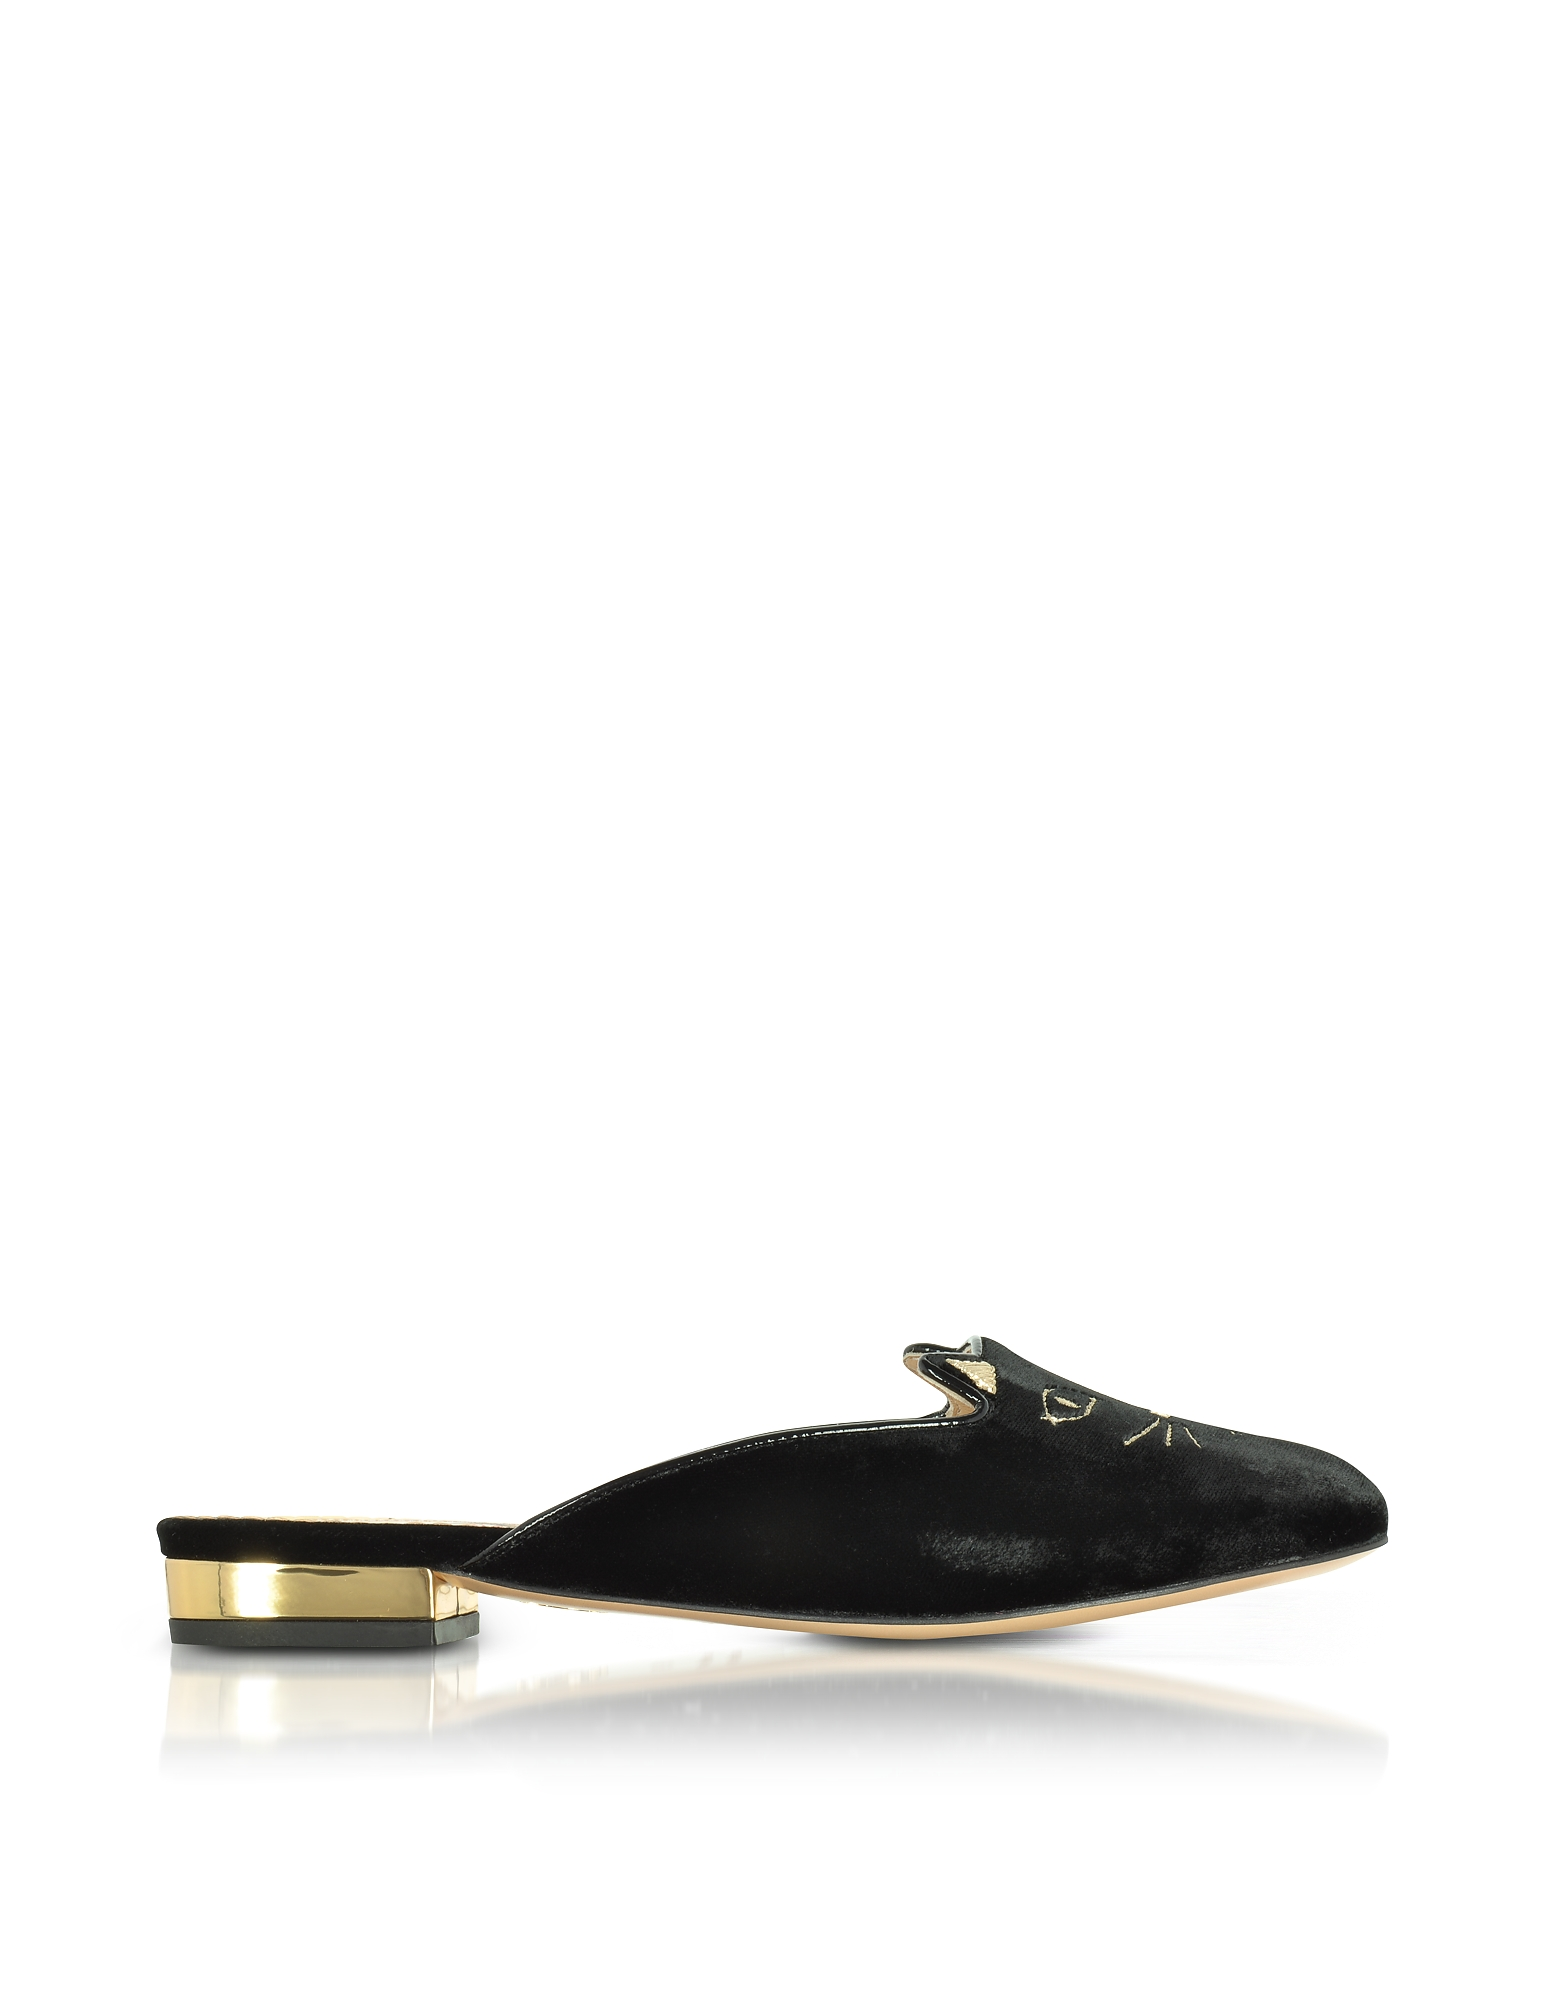 Charlotte Olympia Shoes, Black Velvet Kitty Slippers